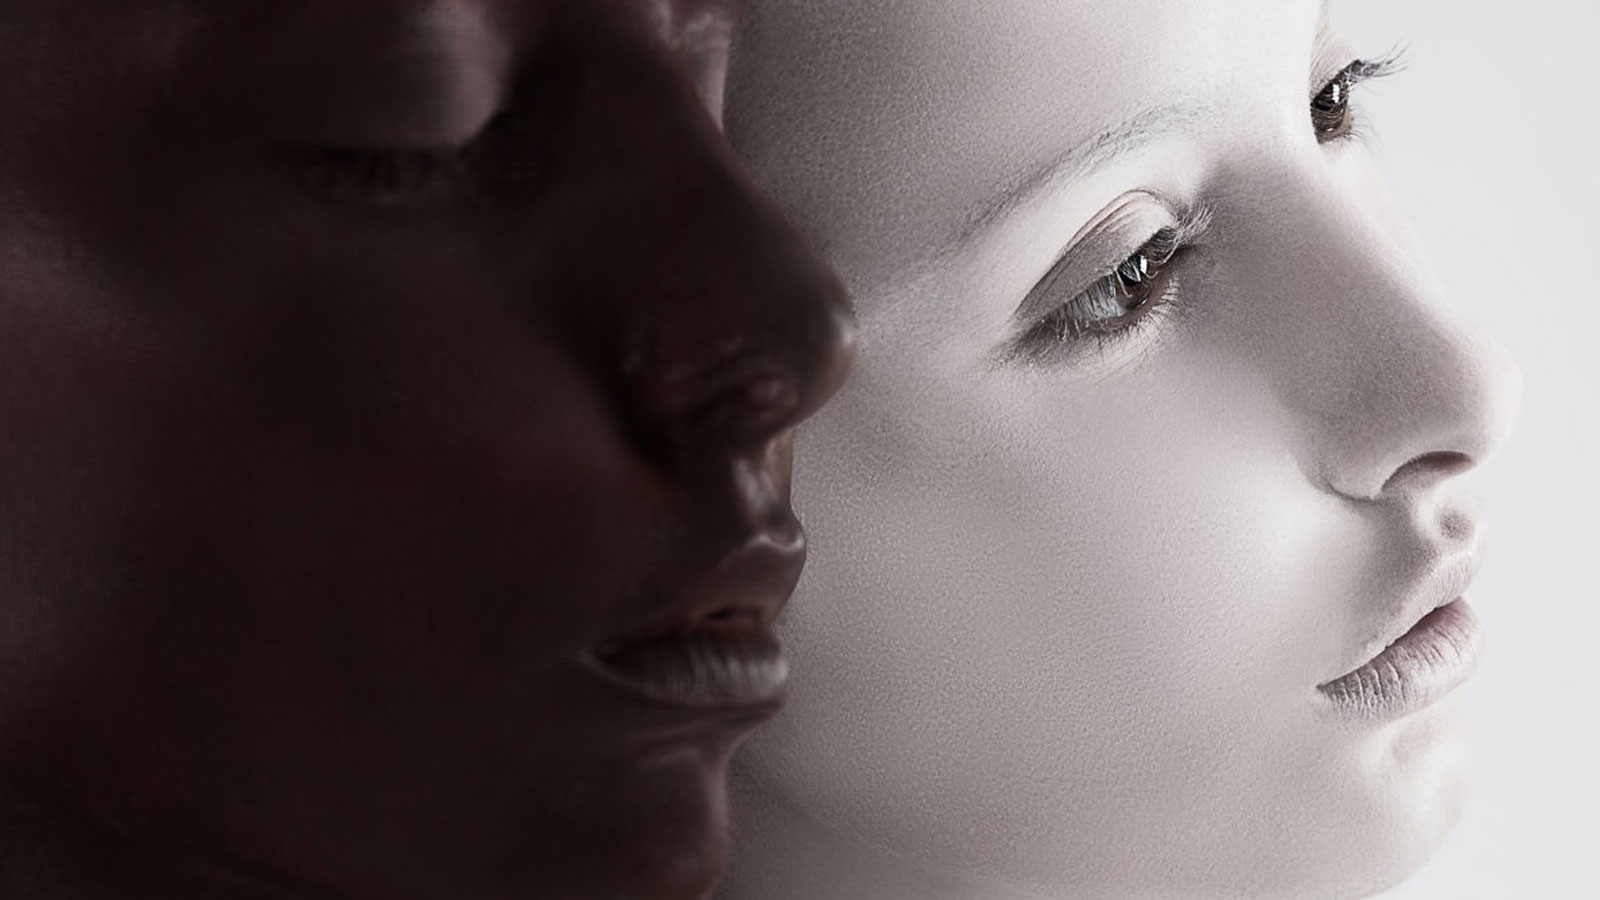 Race and perceived beauty are closely intertwined   source: shutterstock